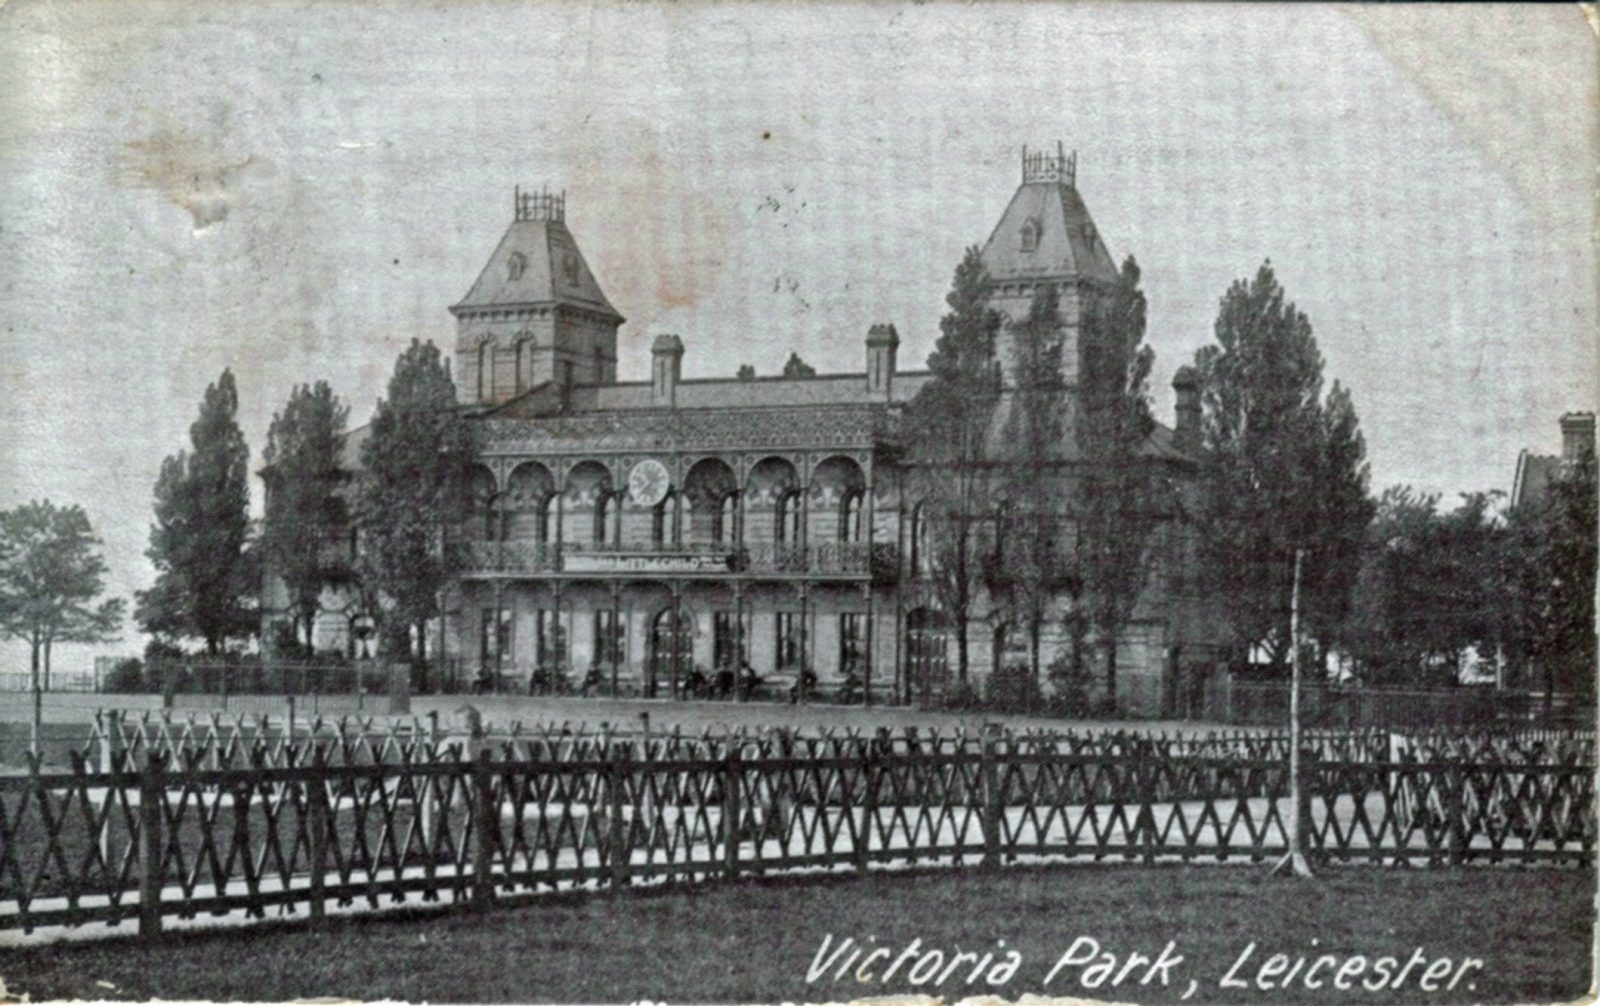 Victoria Park, Leicester. 1901-1920: Pavilion with rustic fencing. Franked 1909 (File:1072)